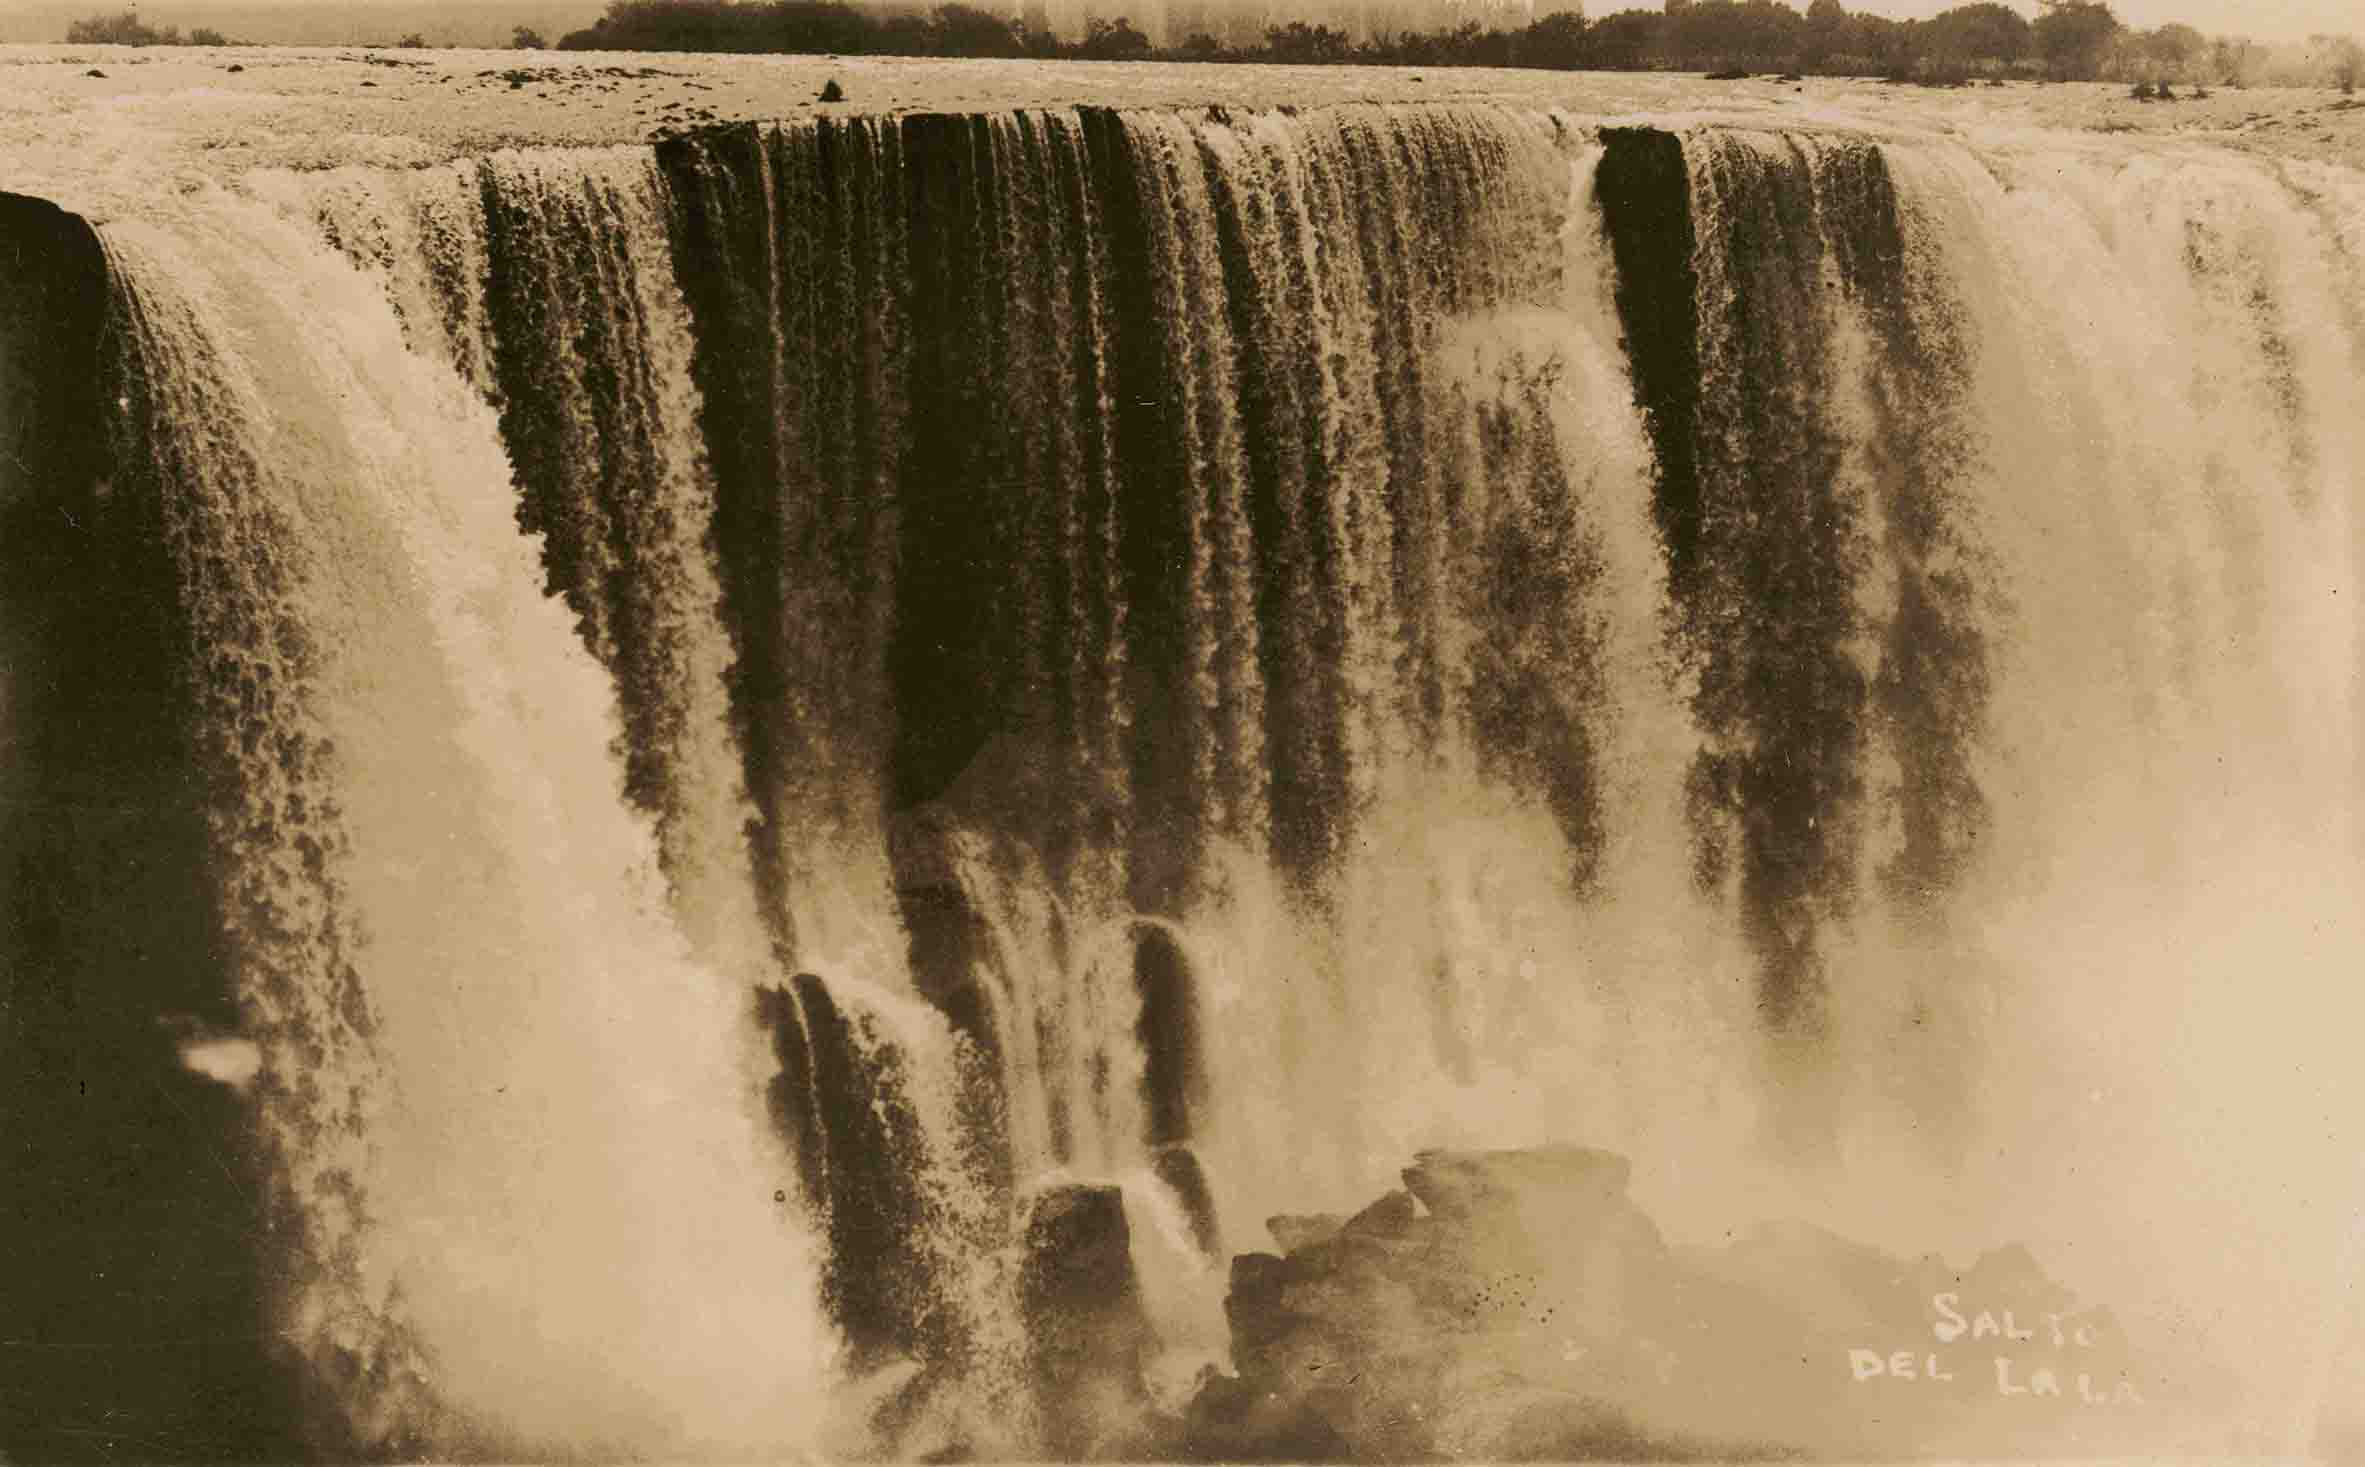 Enterreno - Fotos históricas de chile - fotos antiguas de Chile - Saltos del Laja ca. 1930